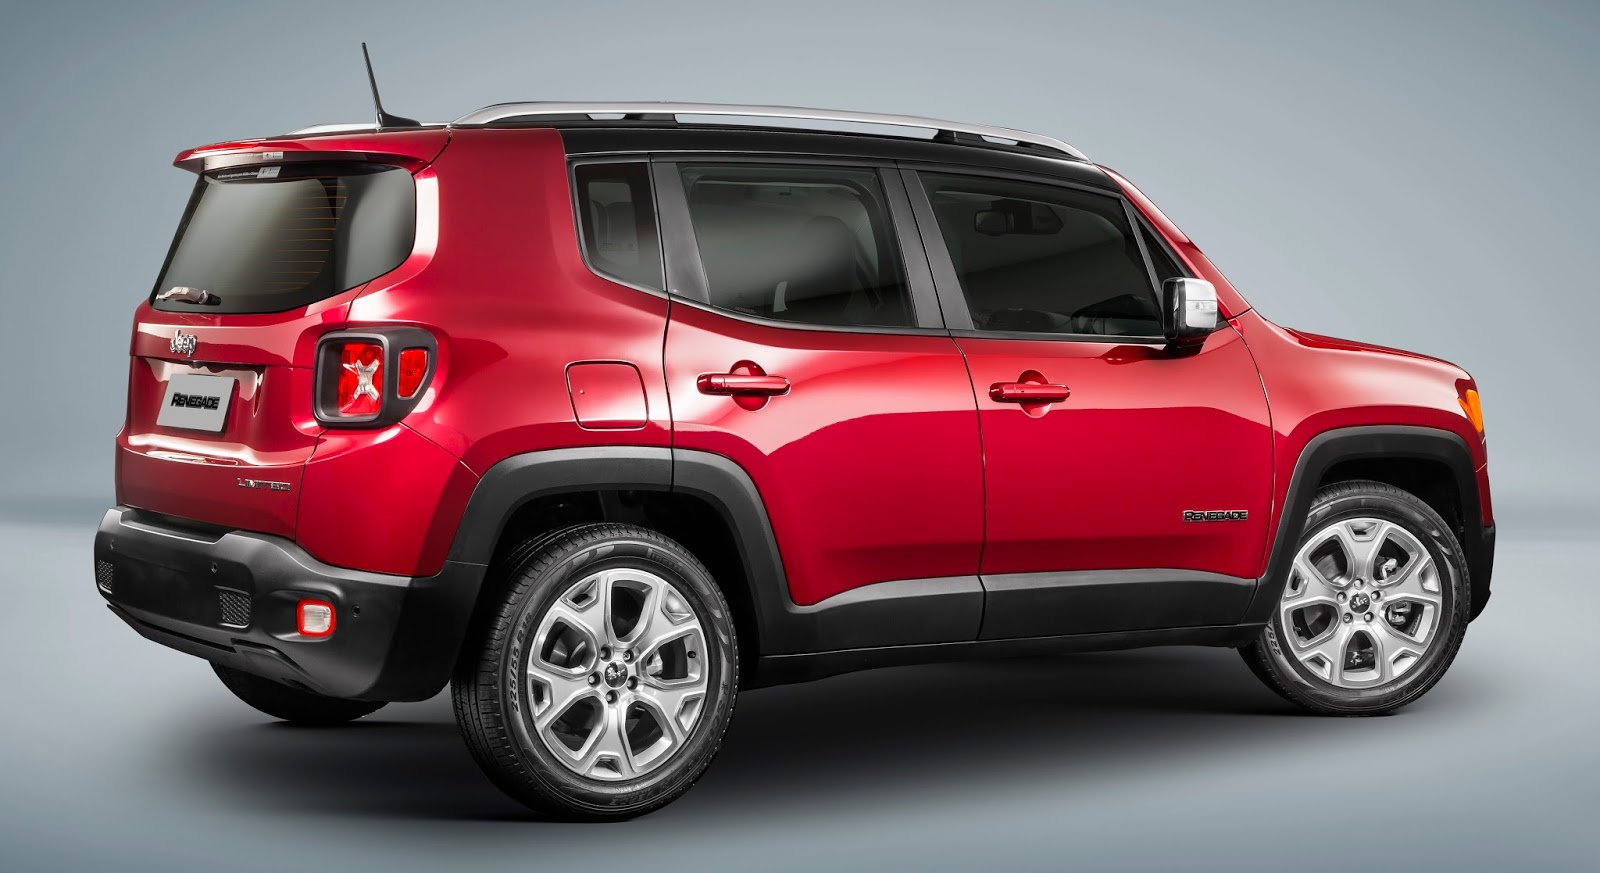 jeep renegade 2017 ganha motor 1 8 aprimorado e mais equipamentos. Black Bedroom Furniture Sets. Home Design Ideas